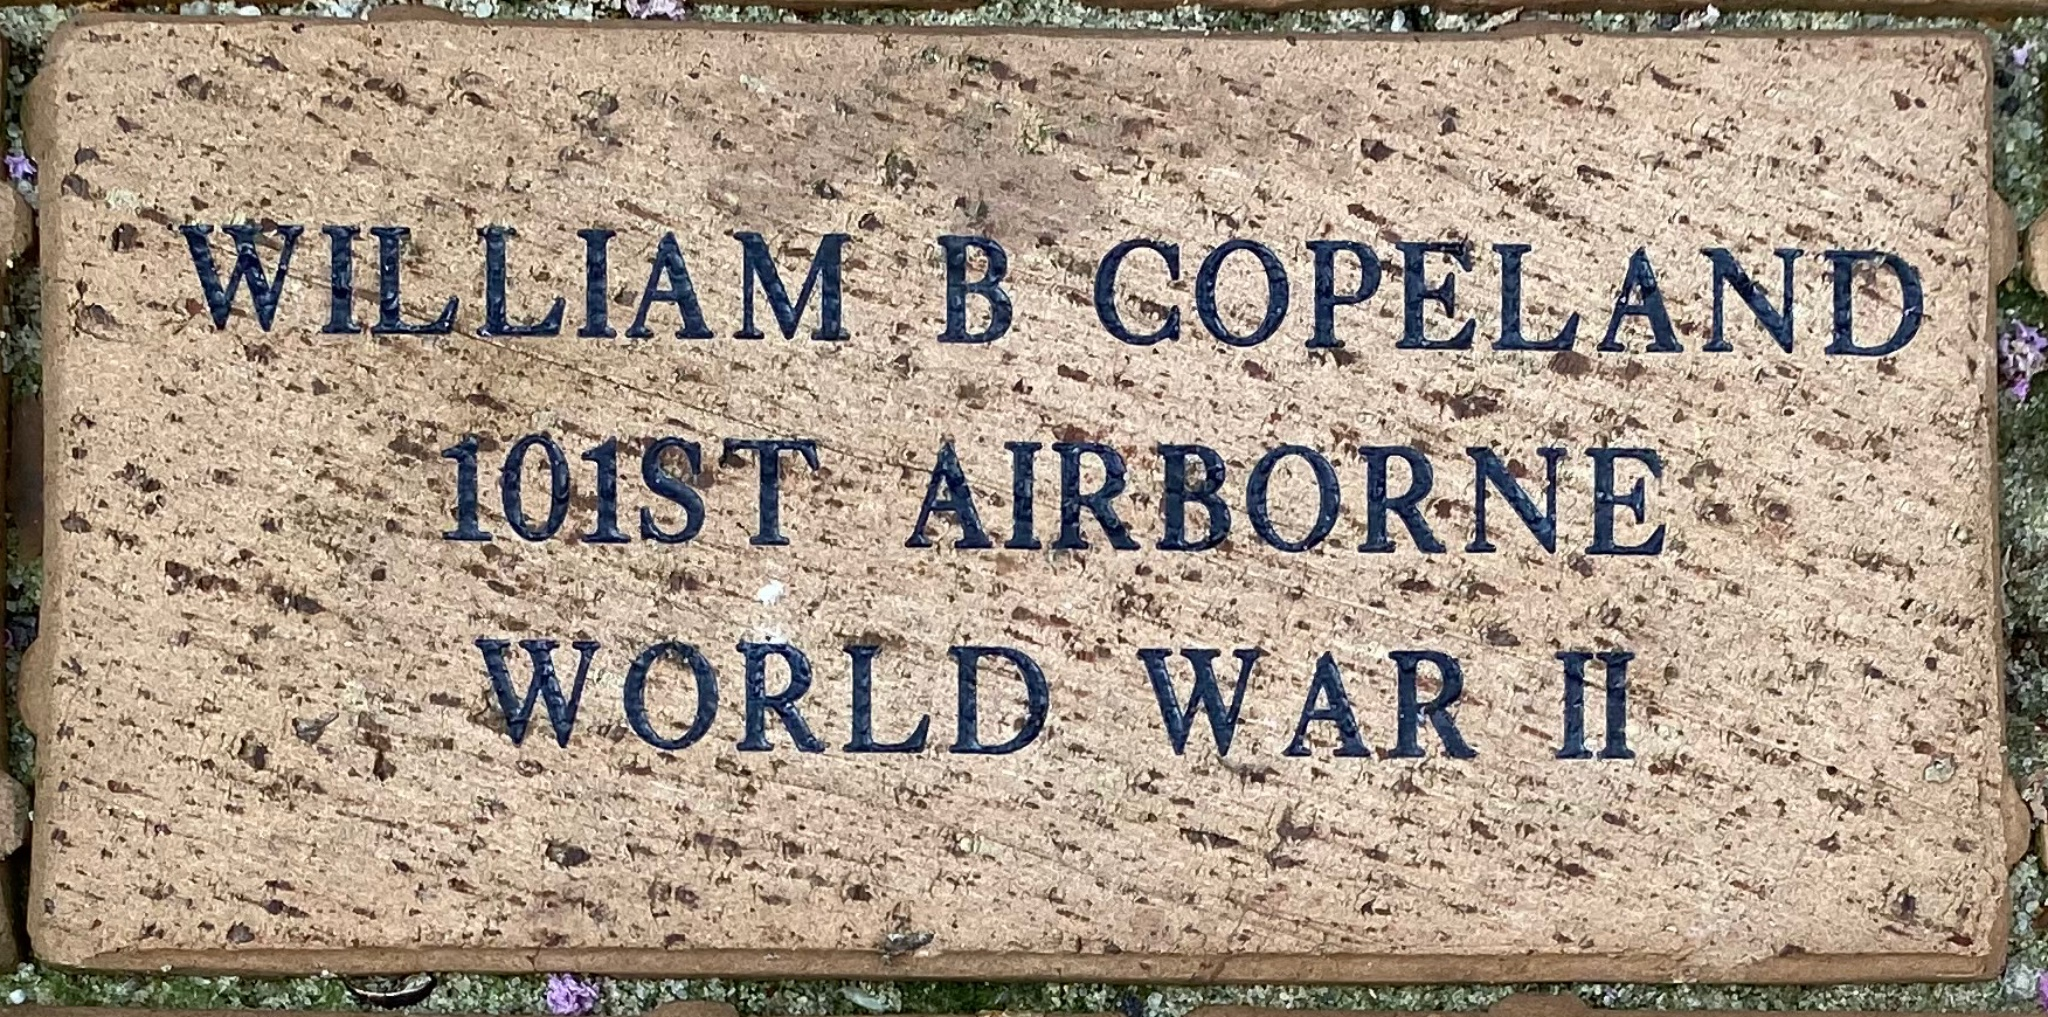 WILLIAM B COPELAND 101ST AIRBORNE WORLD WAR II